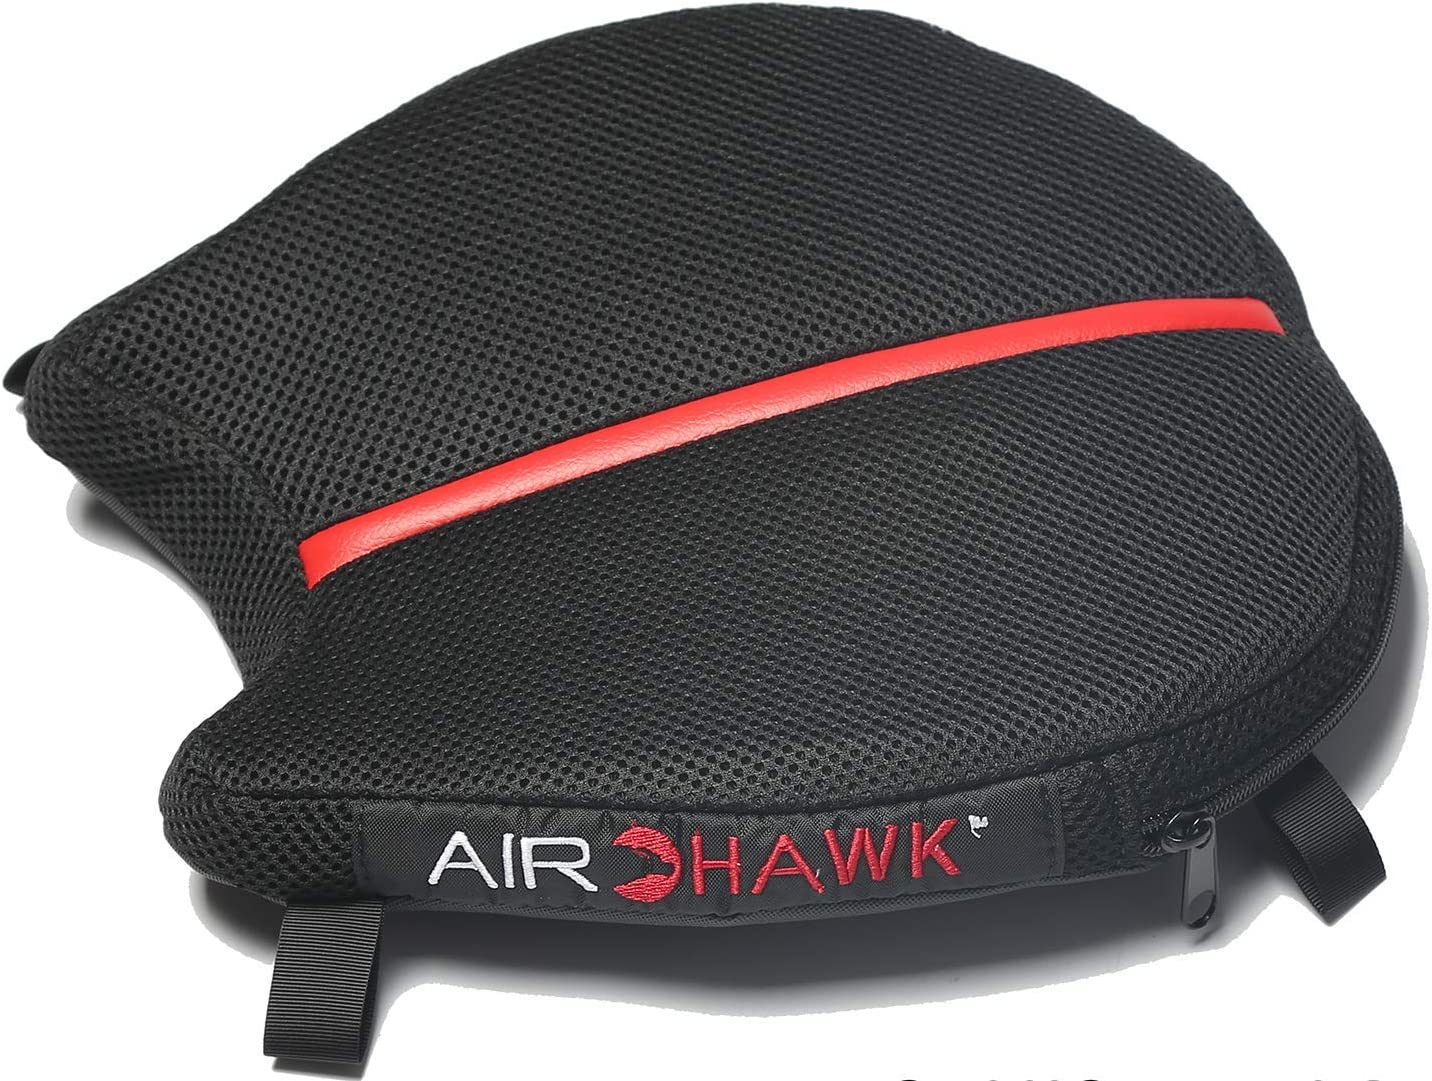 Airhawk - R-REVB Cruiser R Large Motorcycle Seat Cushion for Comfortable Travel - Large Size